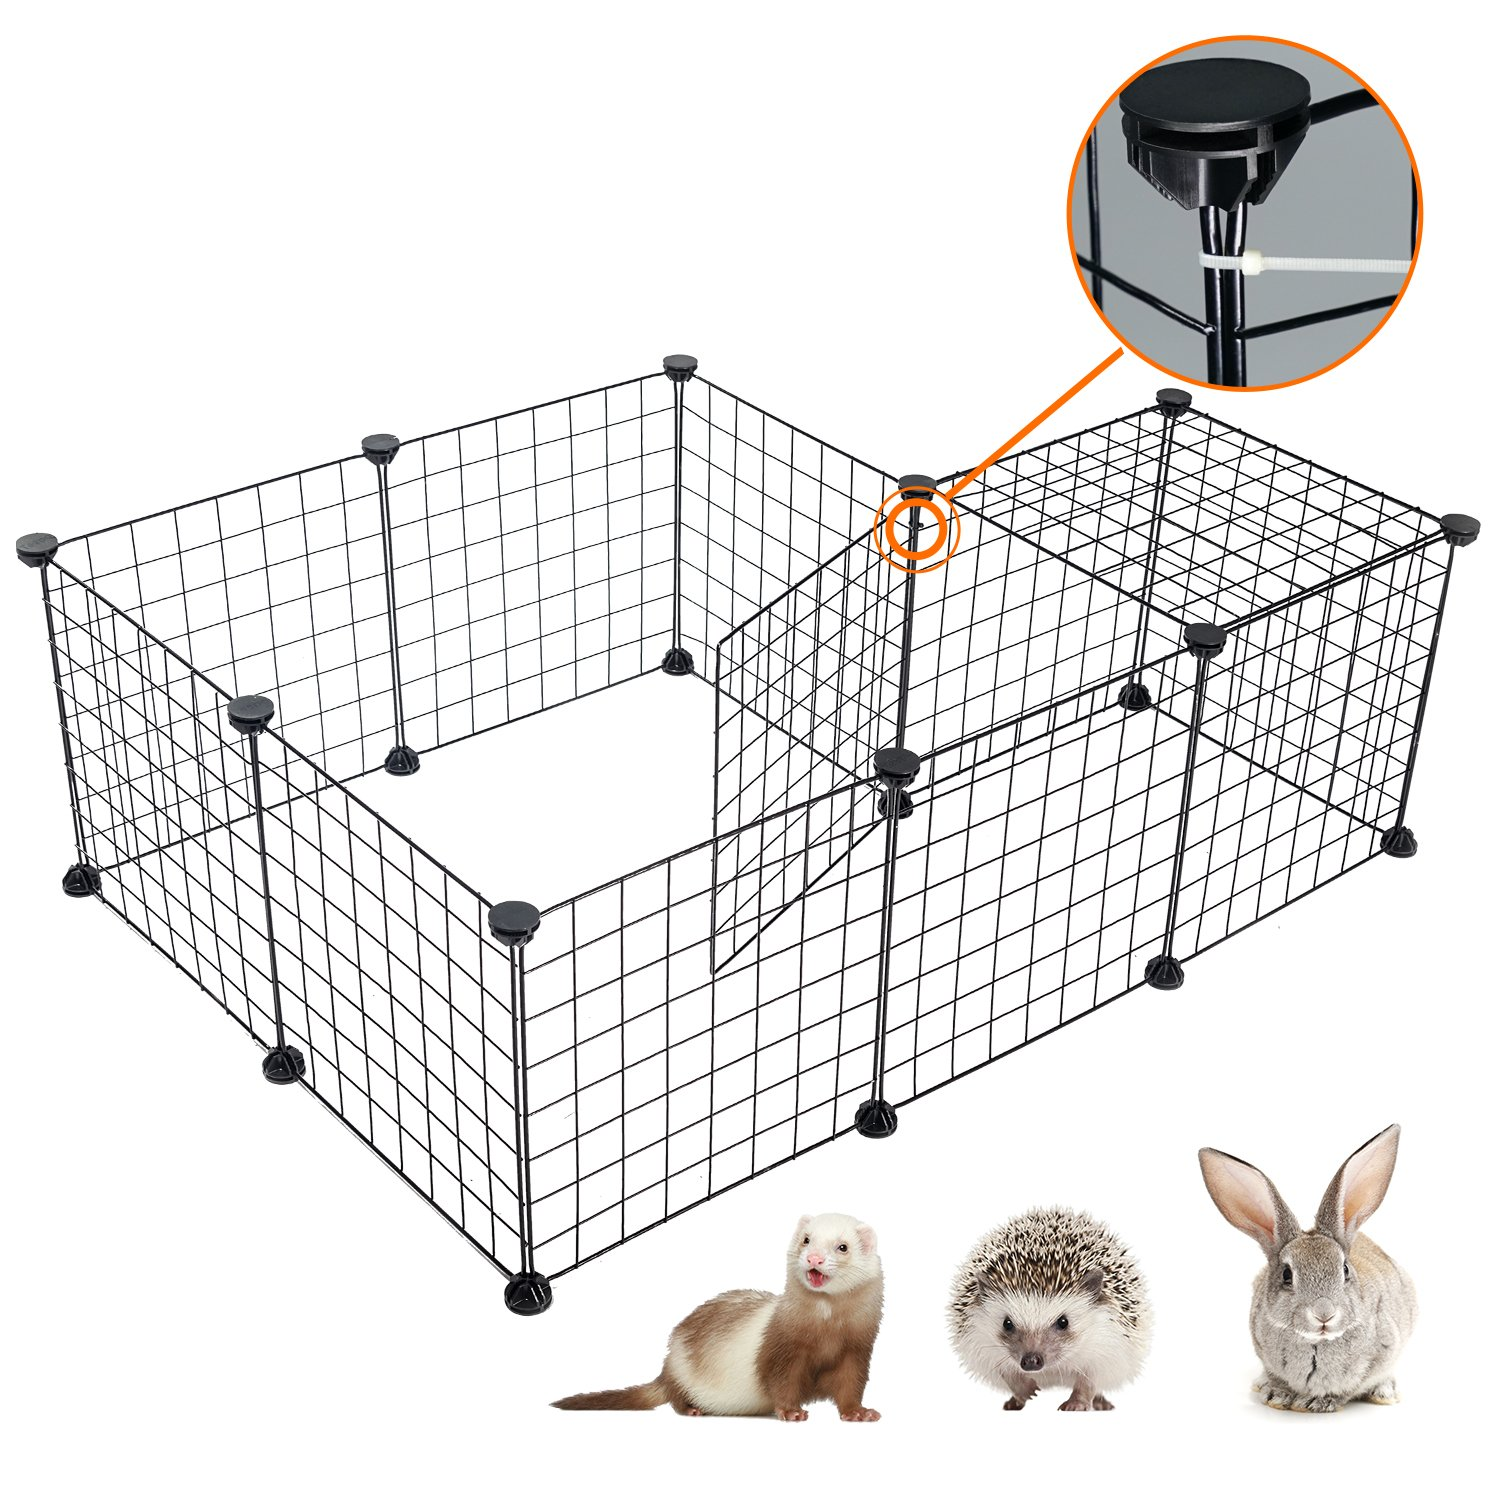 Pet Playpen Portable Animal Crate - DESINO DIY Metal Wire Kennel for Small Pet Indoor, Extendable Pet Fence for Hamster, Rabbit, Guinea Pigs, Puppy, Bunny Cage, Small Animal Pen, Black, 12 Panels